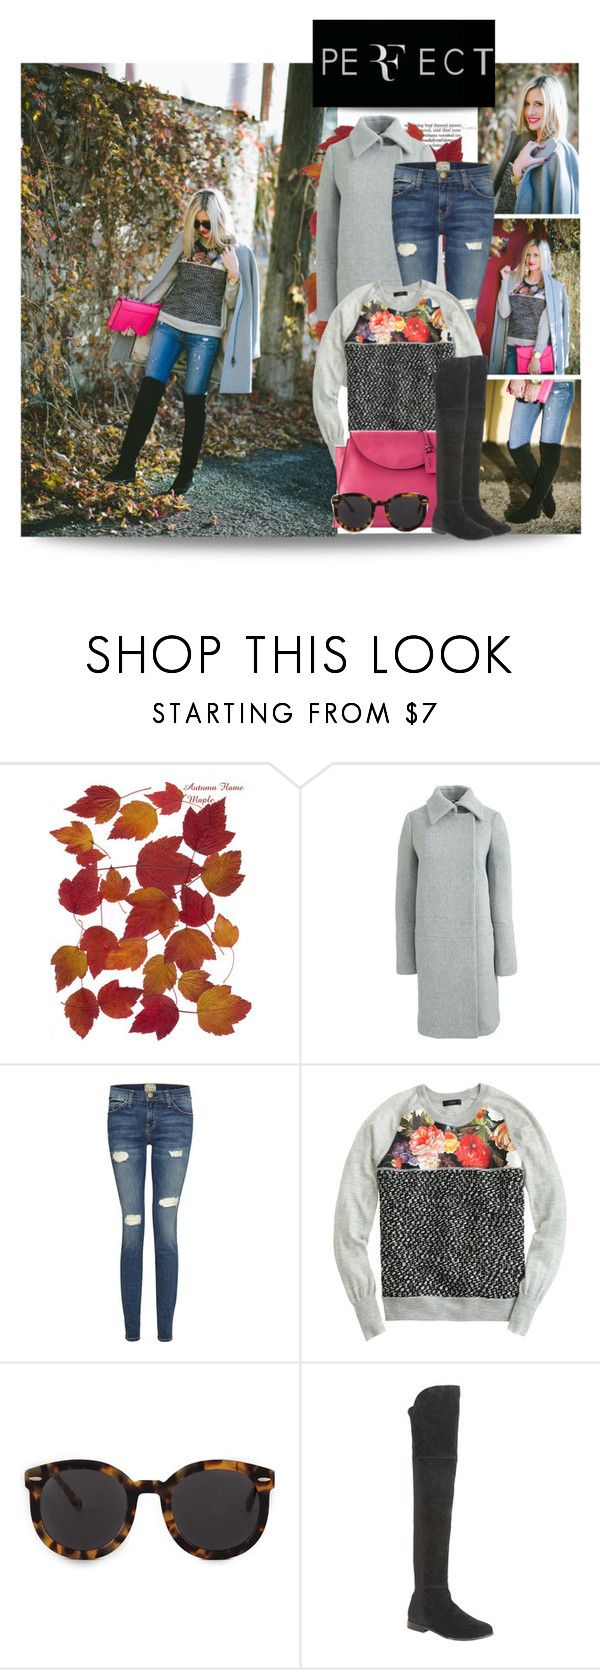 """""""casual style"""" by stacy-gustin ❤ liked on Polyvore featuring J.Crew, Current/Elliott, Kate Spade Saturday, Karen Walker, Chinese Laundry, BloggerStyle and littlemissfearless"""